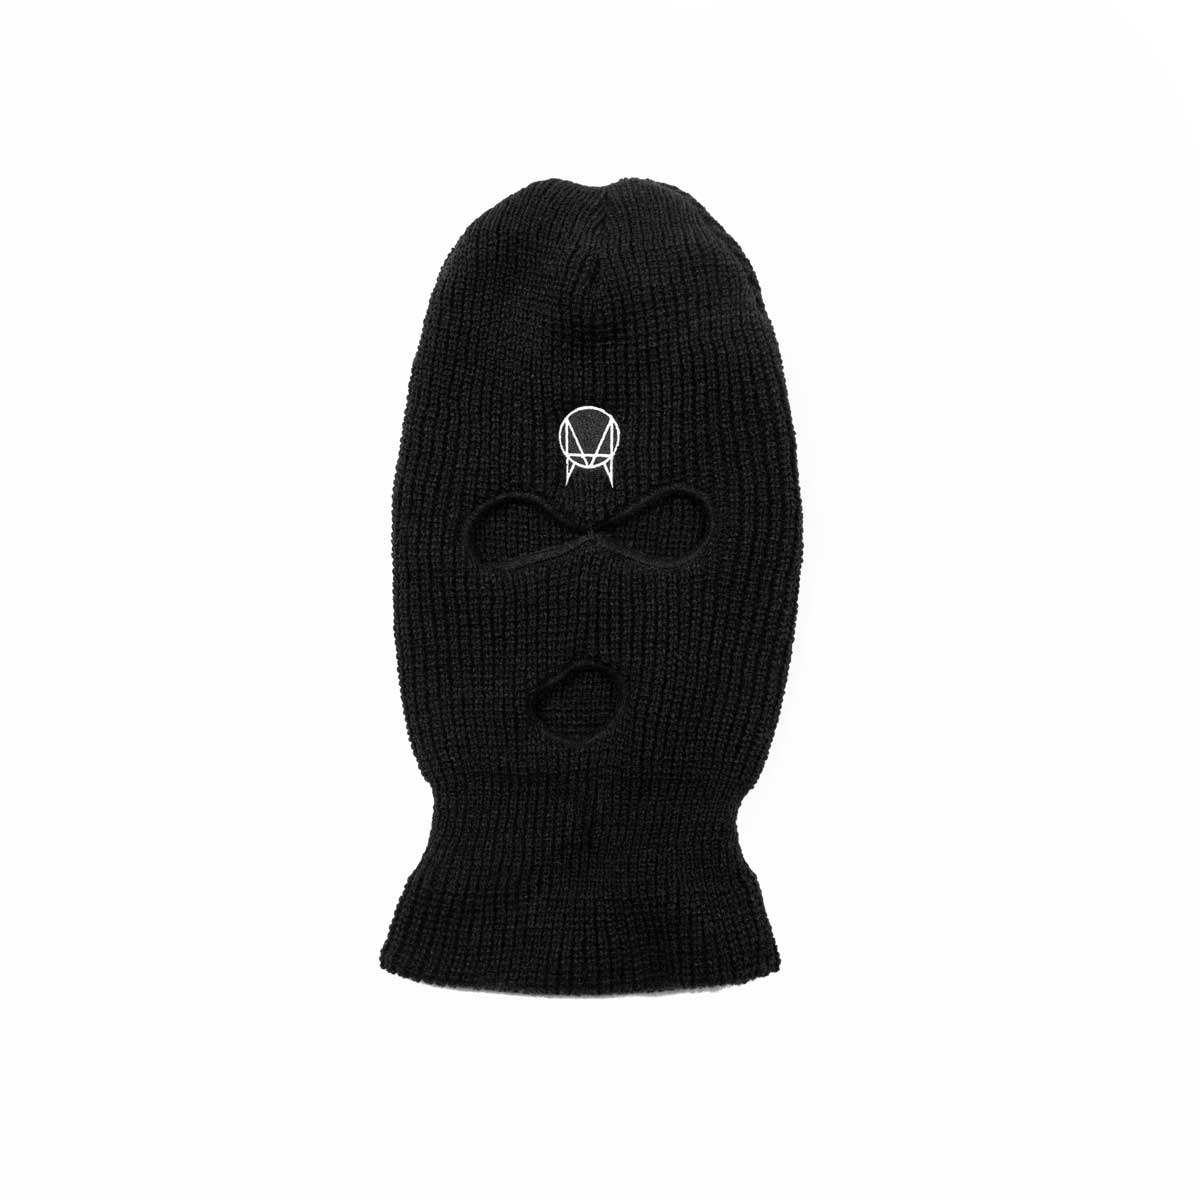 LIMITED SKI MASK - BLACK